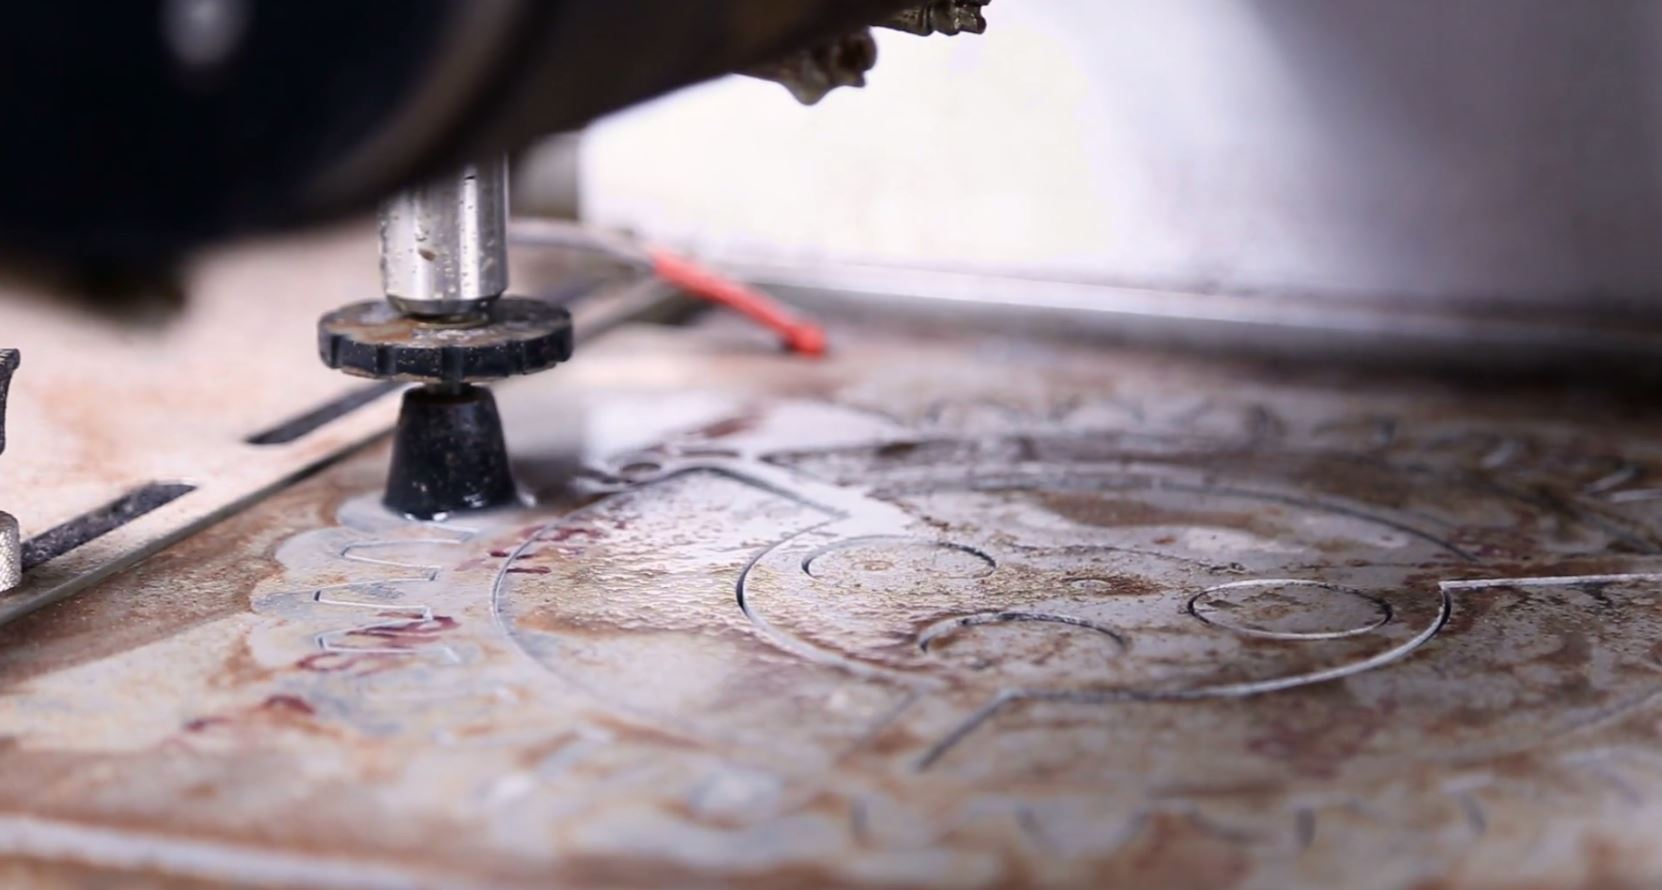 Omax Introduces Personal Waterjet